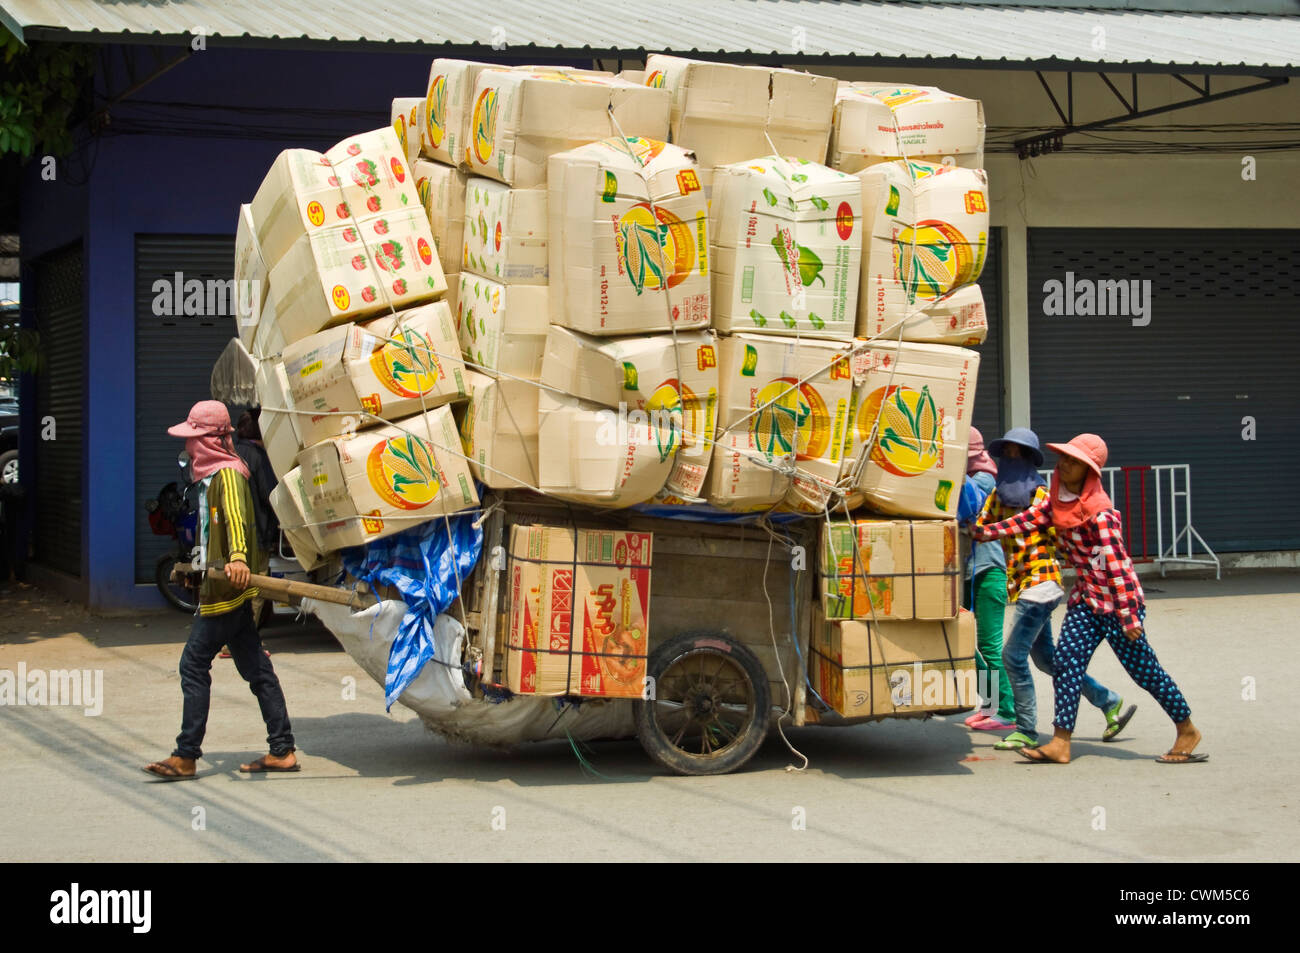 Horizontal Close Up Of A Trolley Overloaded With Full